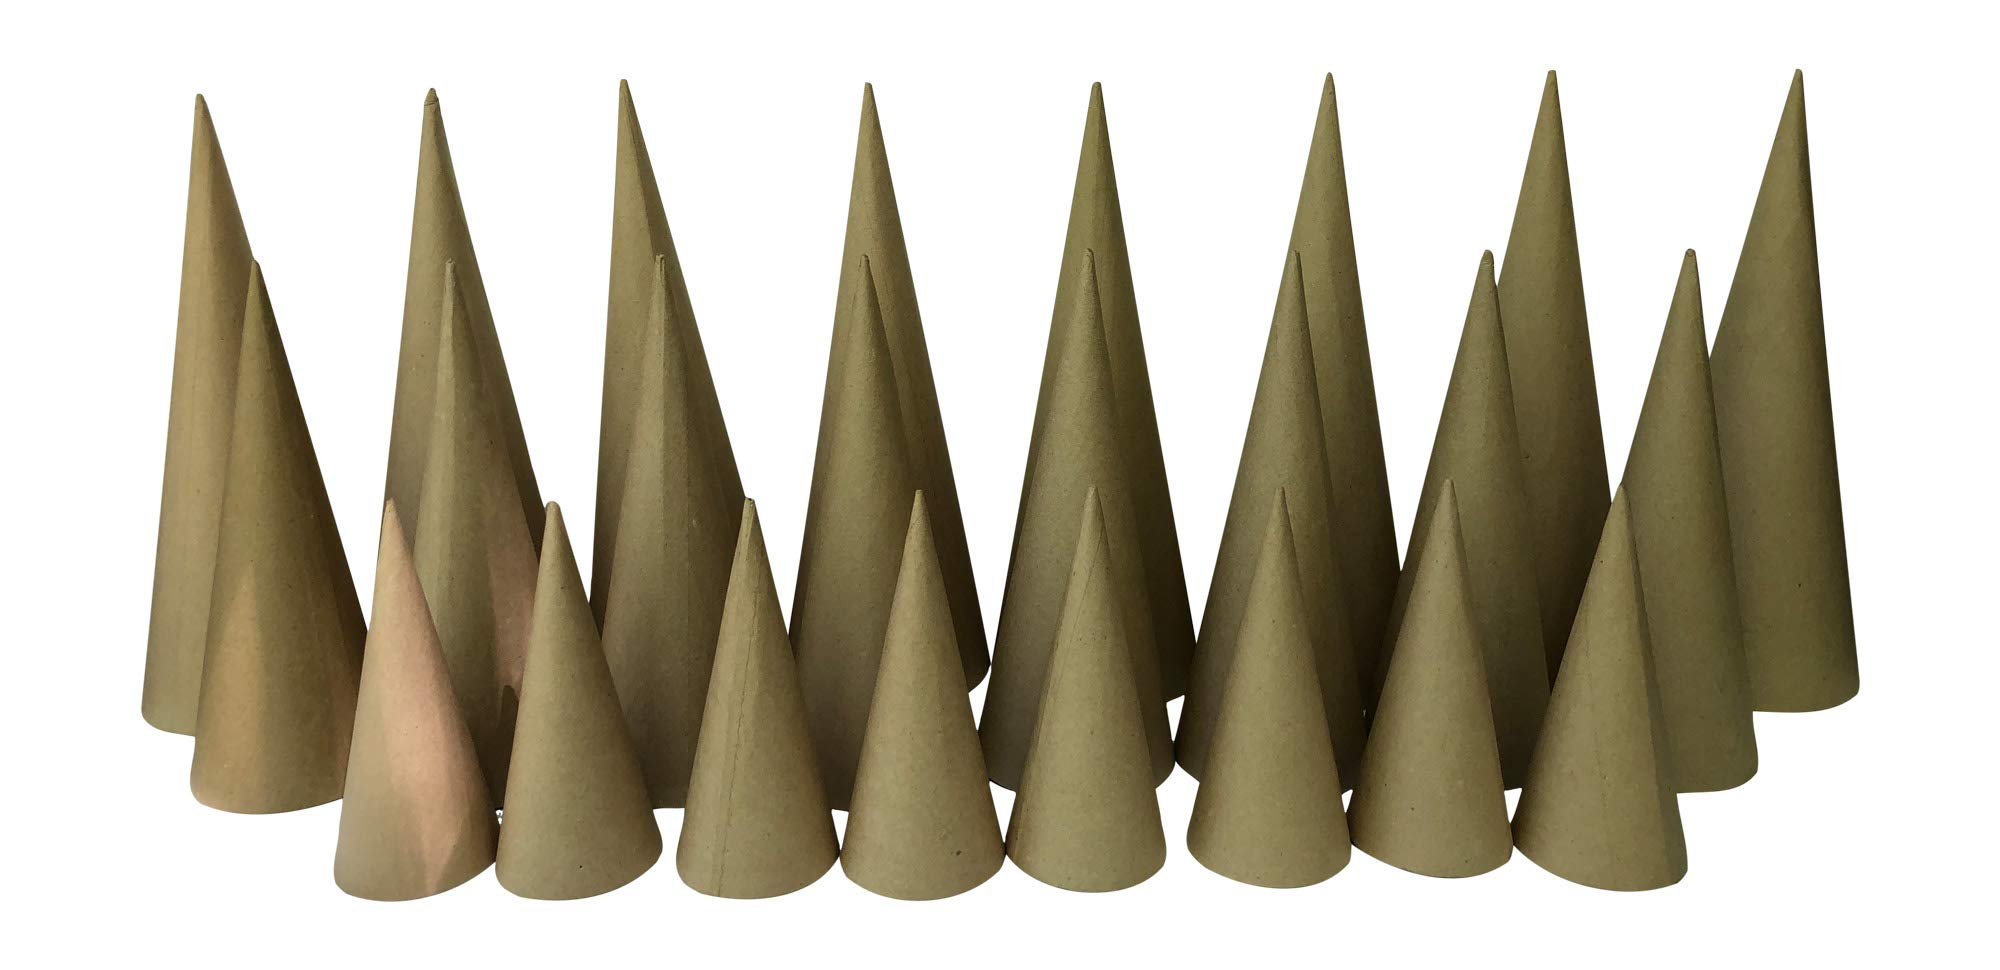 Paper Mache Craft Cones Variety Pack 3 Sizes- 13.75 x 5, 10.63 x 4, 7 x 3 Inches- Set of 24